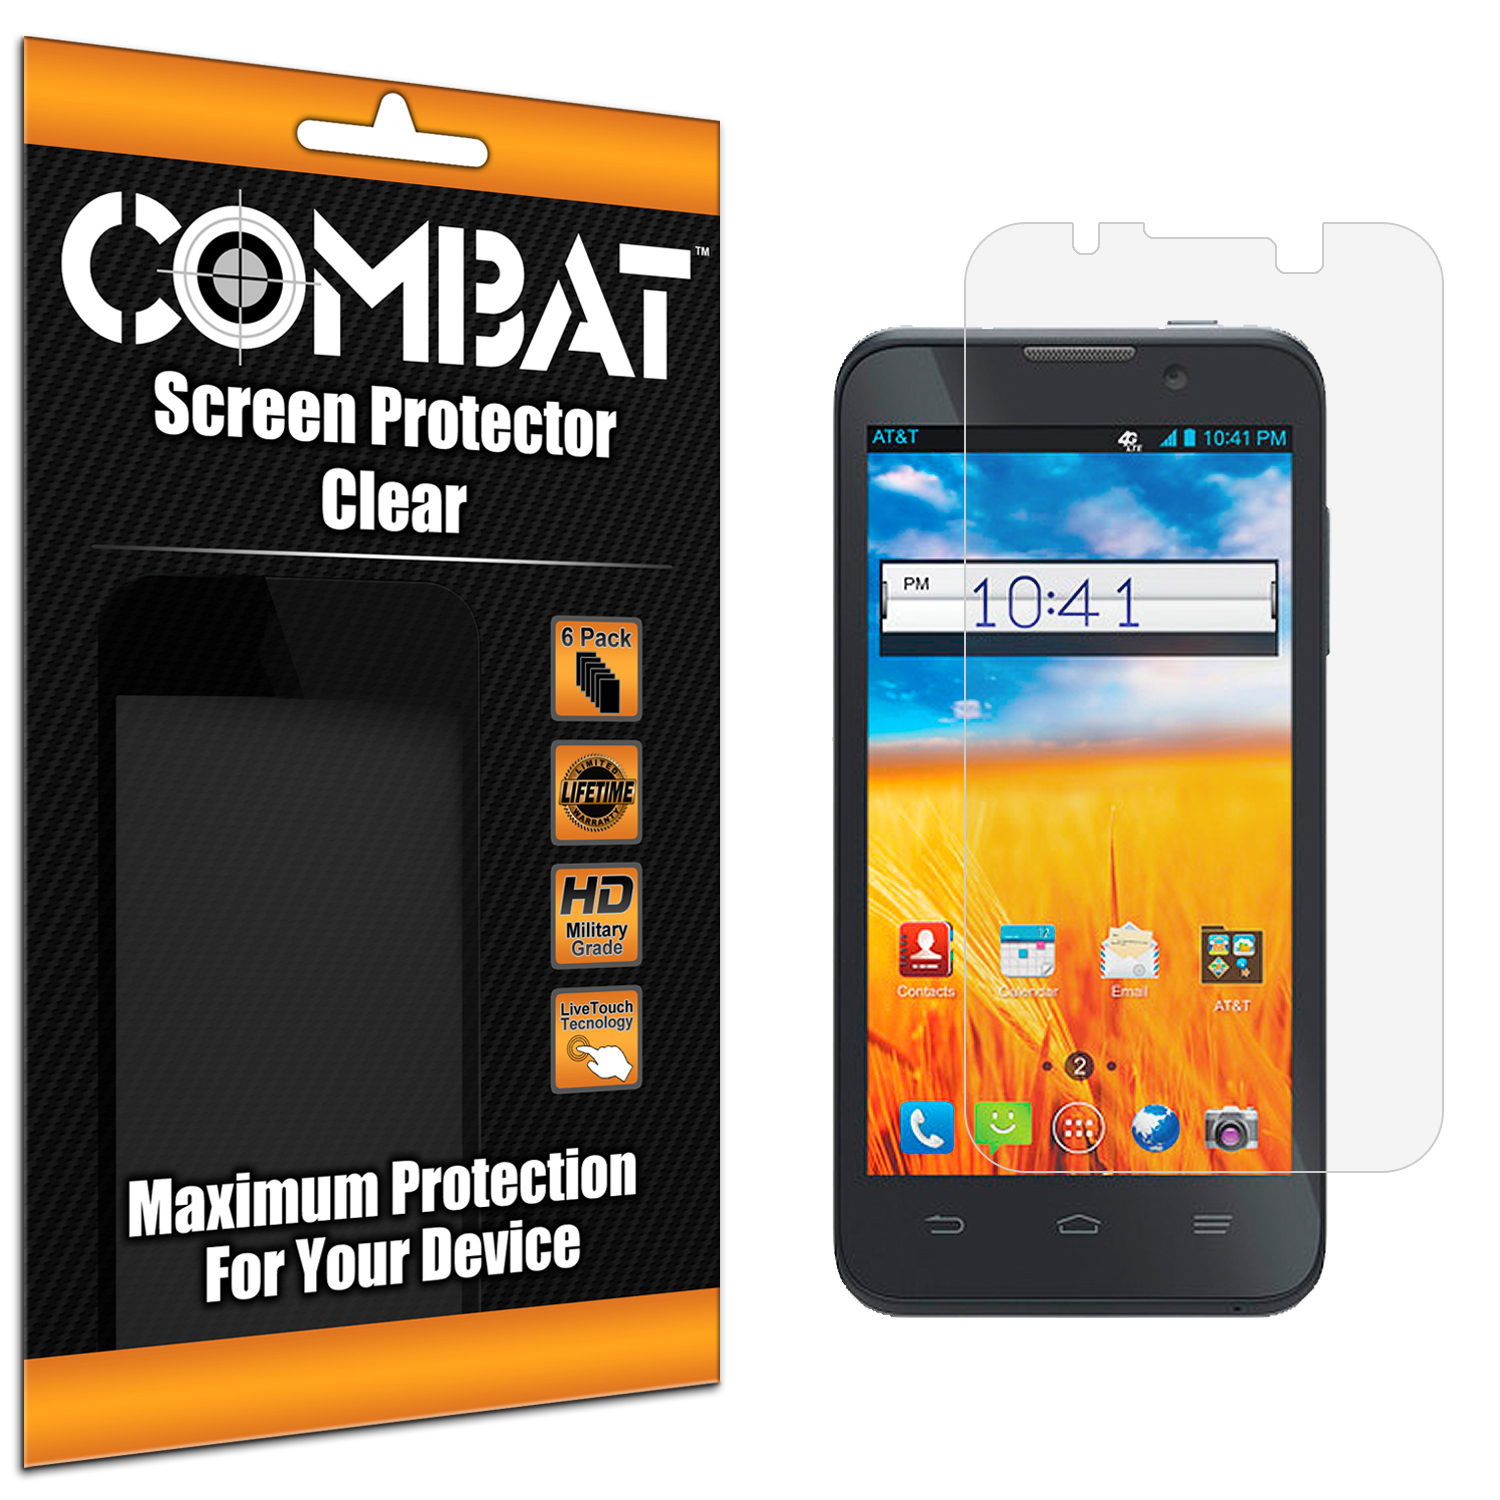 ZTE Z998 Combat 6 Pack HD Clear Screen Protector